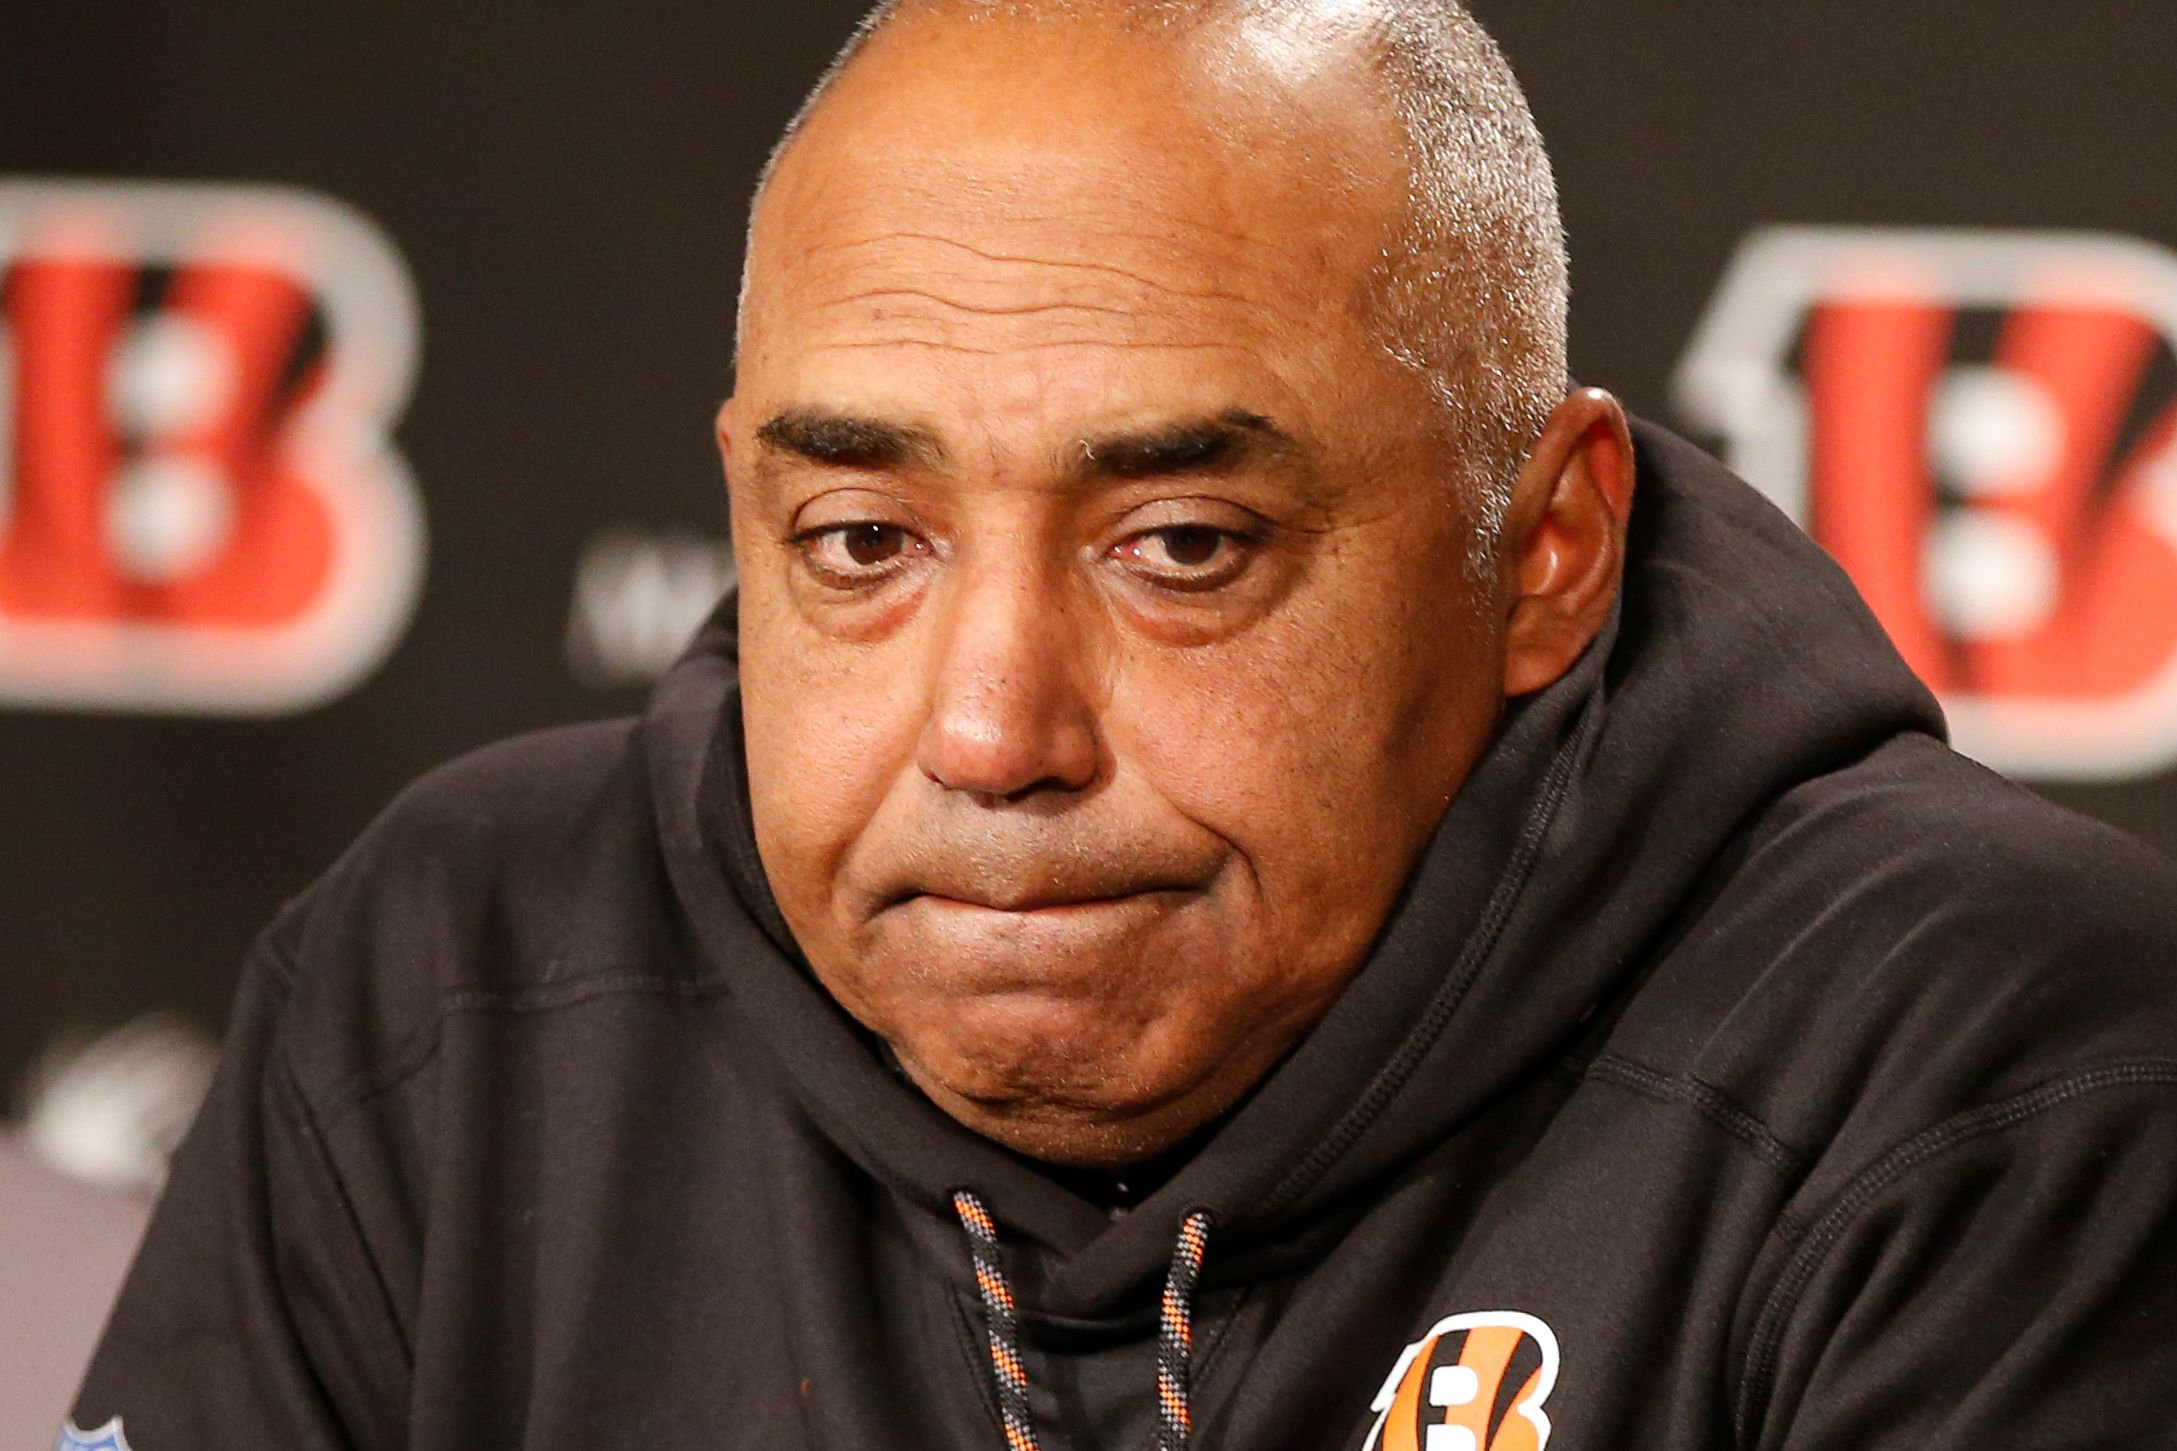 Bengals' coach Marvin Lewis still unsure of future with team